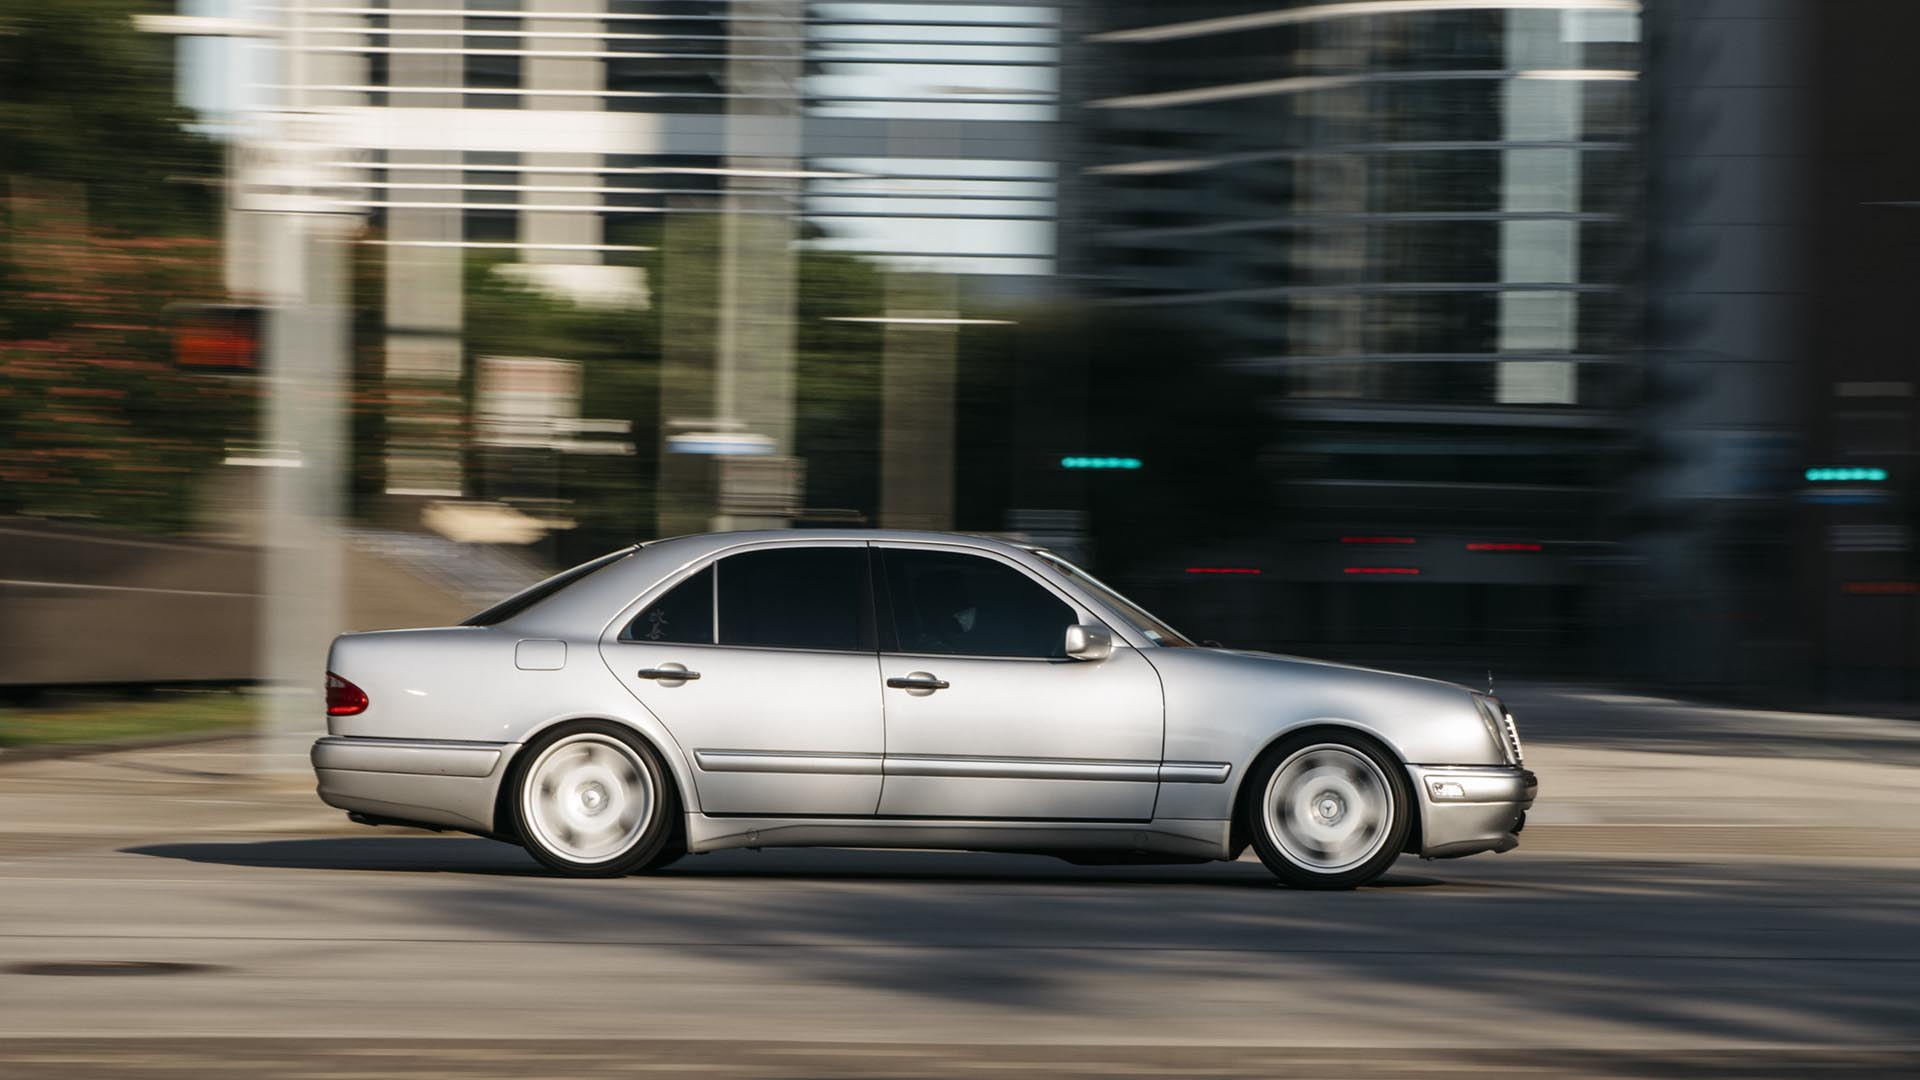 06_Mercedes-Benz E55 AMG manual swapped action01